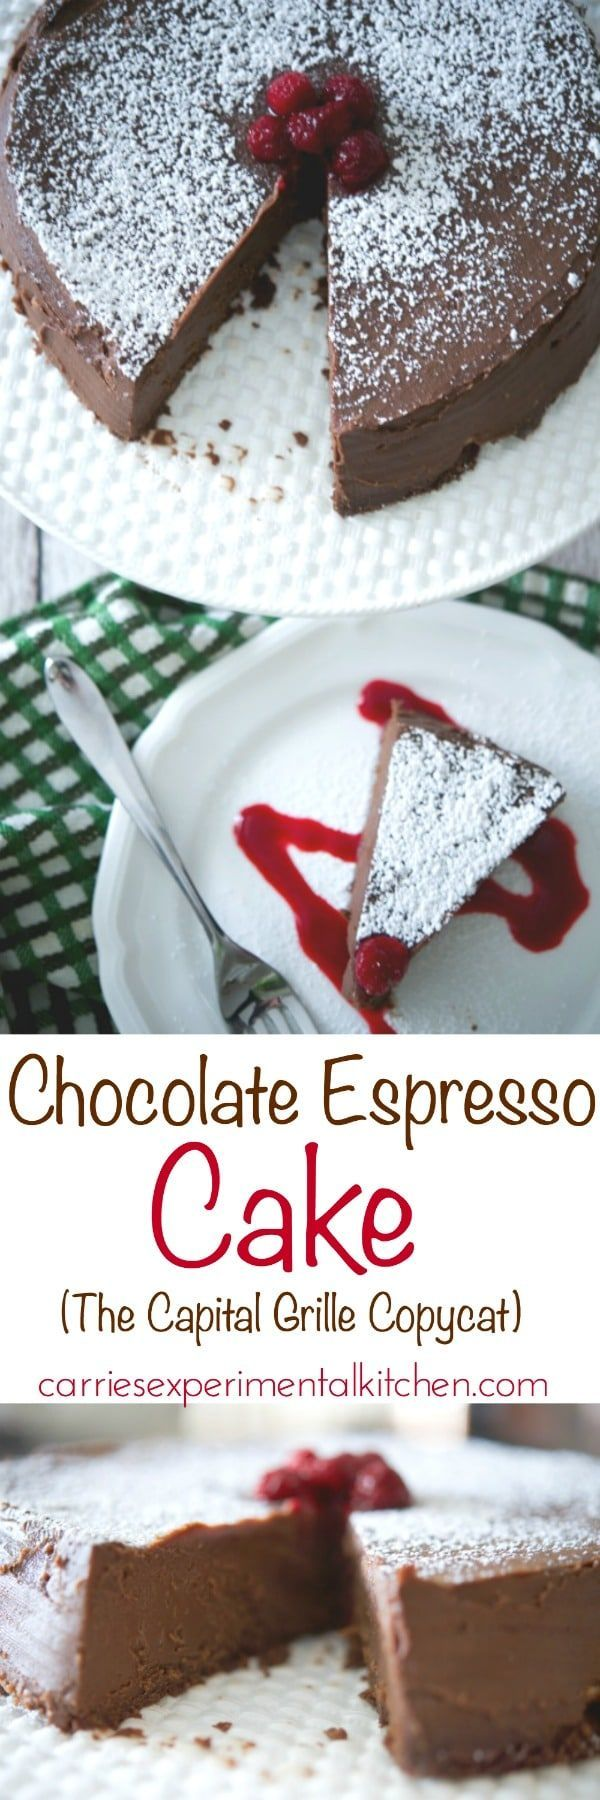 The Capital Grille's Chocolate Espresso Cake is a flourless, decadently rich, chocolatey dessert made with semi sweet chocolate and espresso served with raspberry sauce. #cake #dessert #chocolate #glutenfree #copycatrecipe